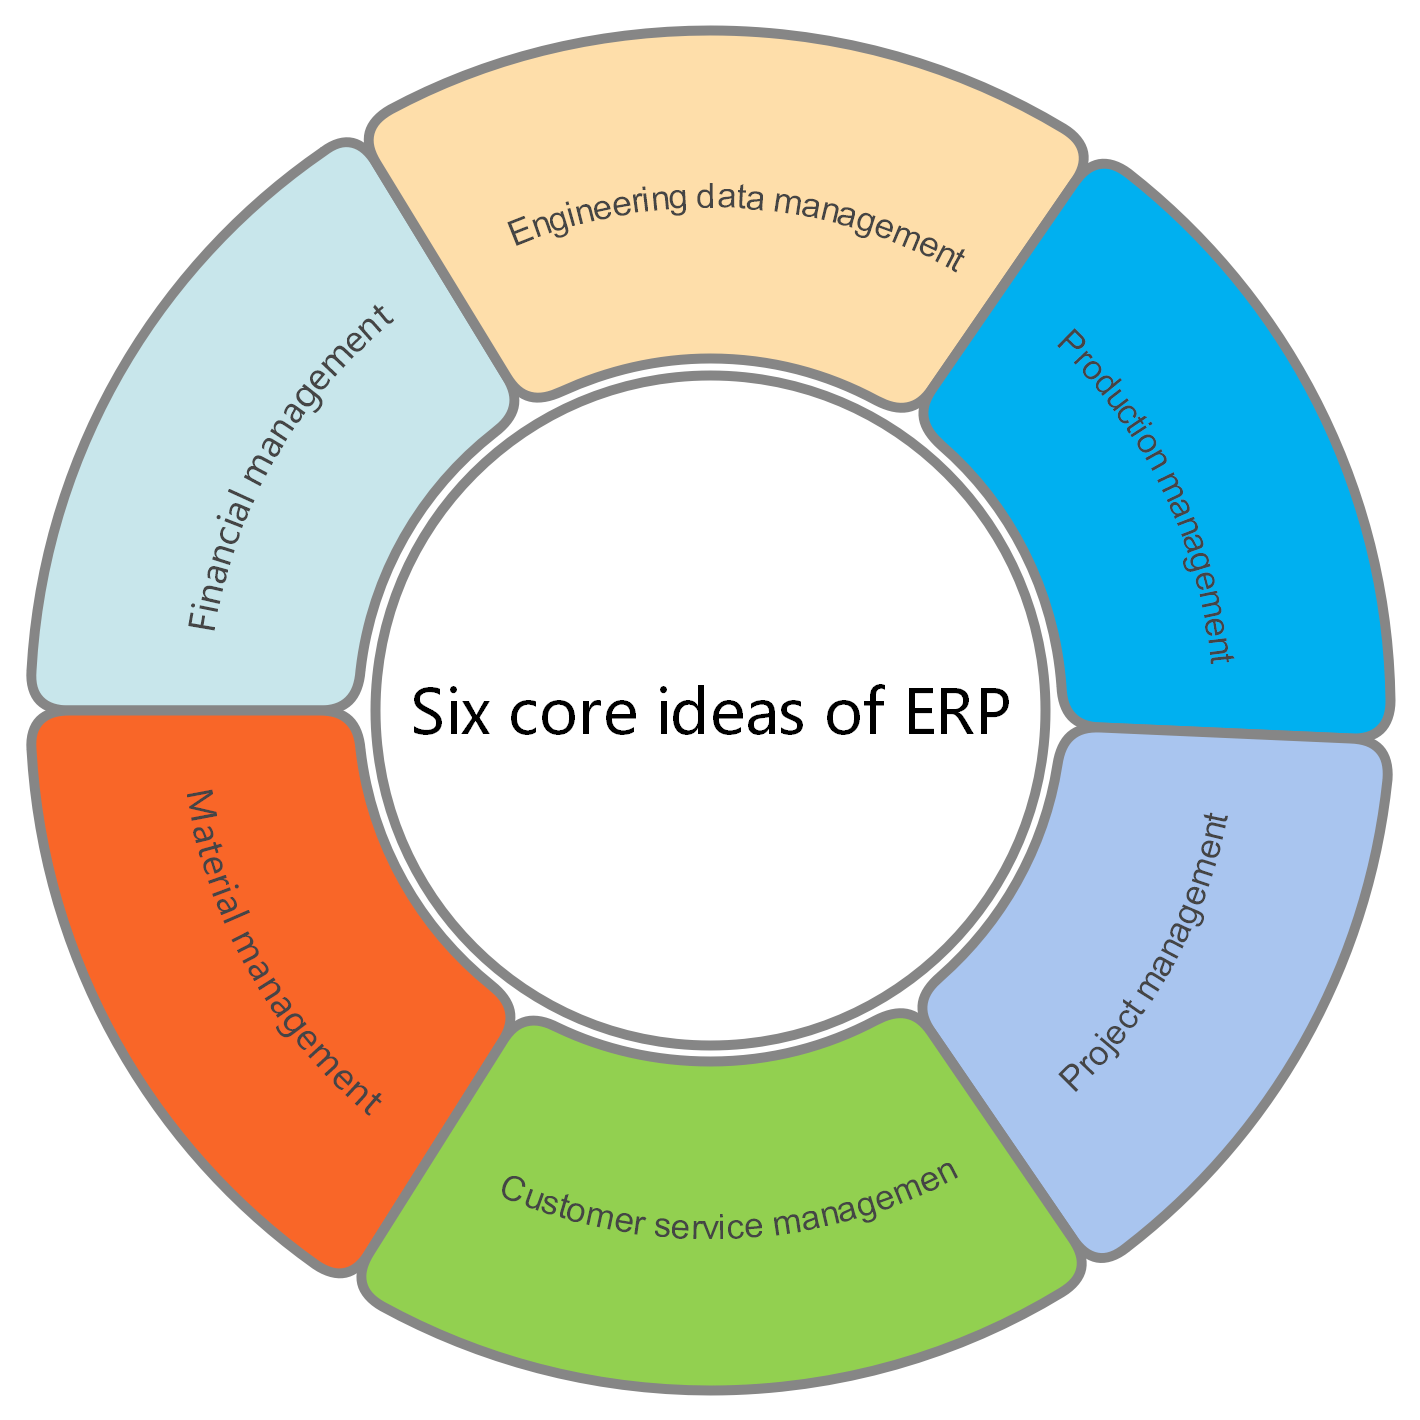 Six Core Ideas of ERP